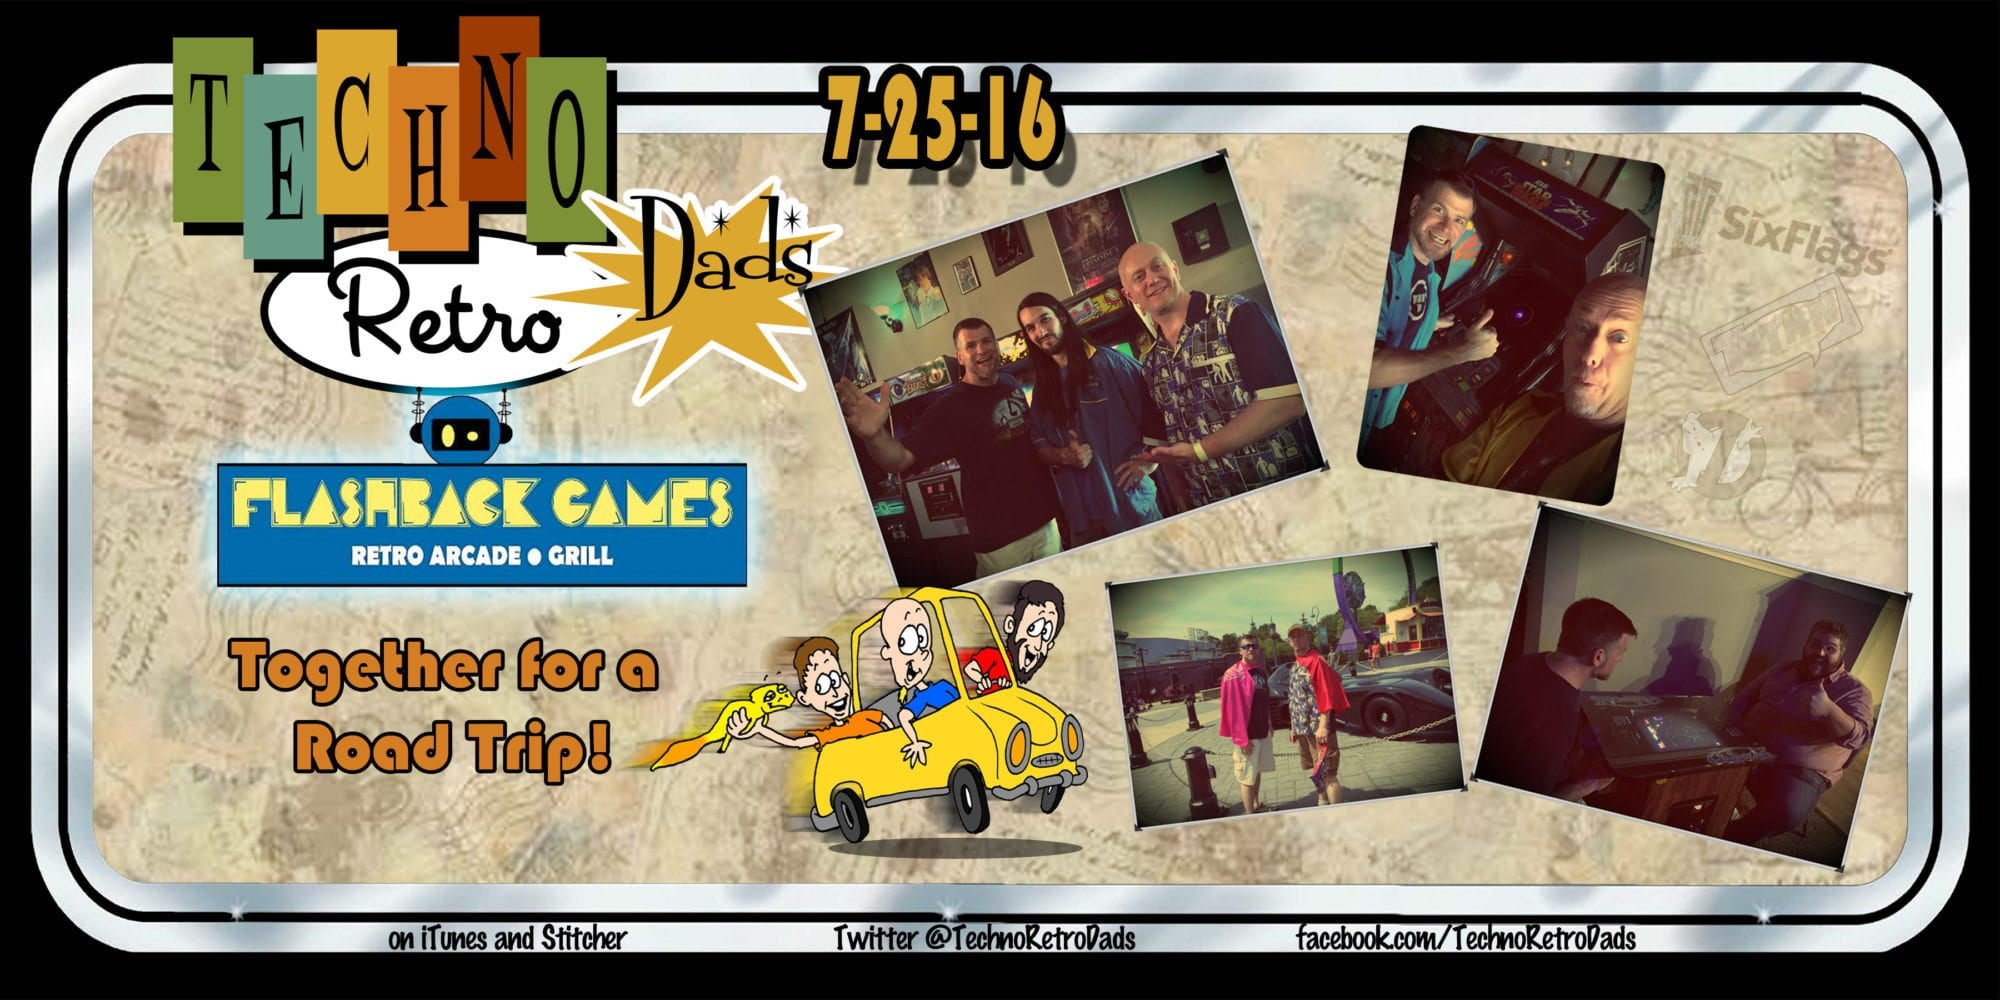 TechnoRetro Dads at Flashback Games Retro Arcade